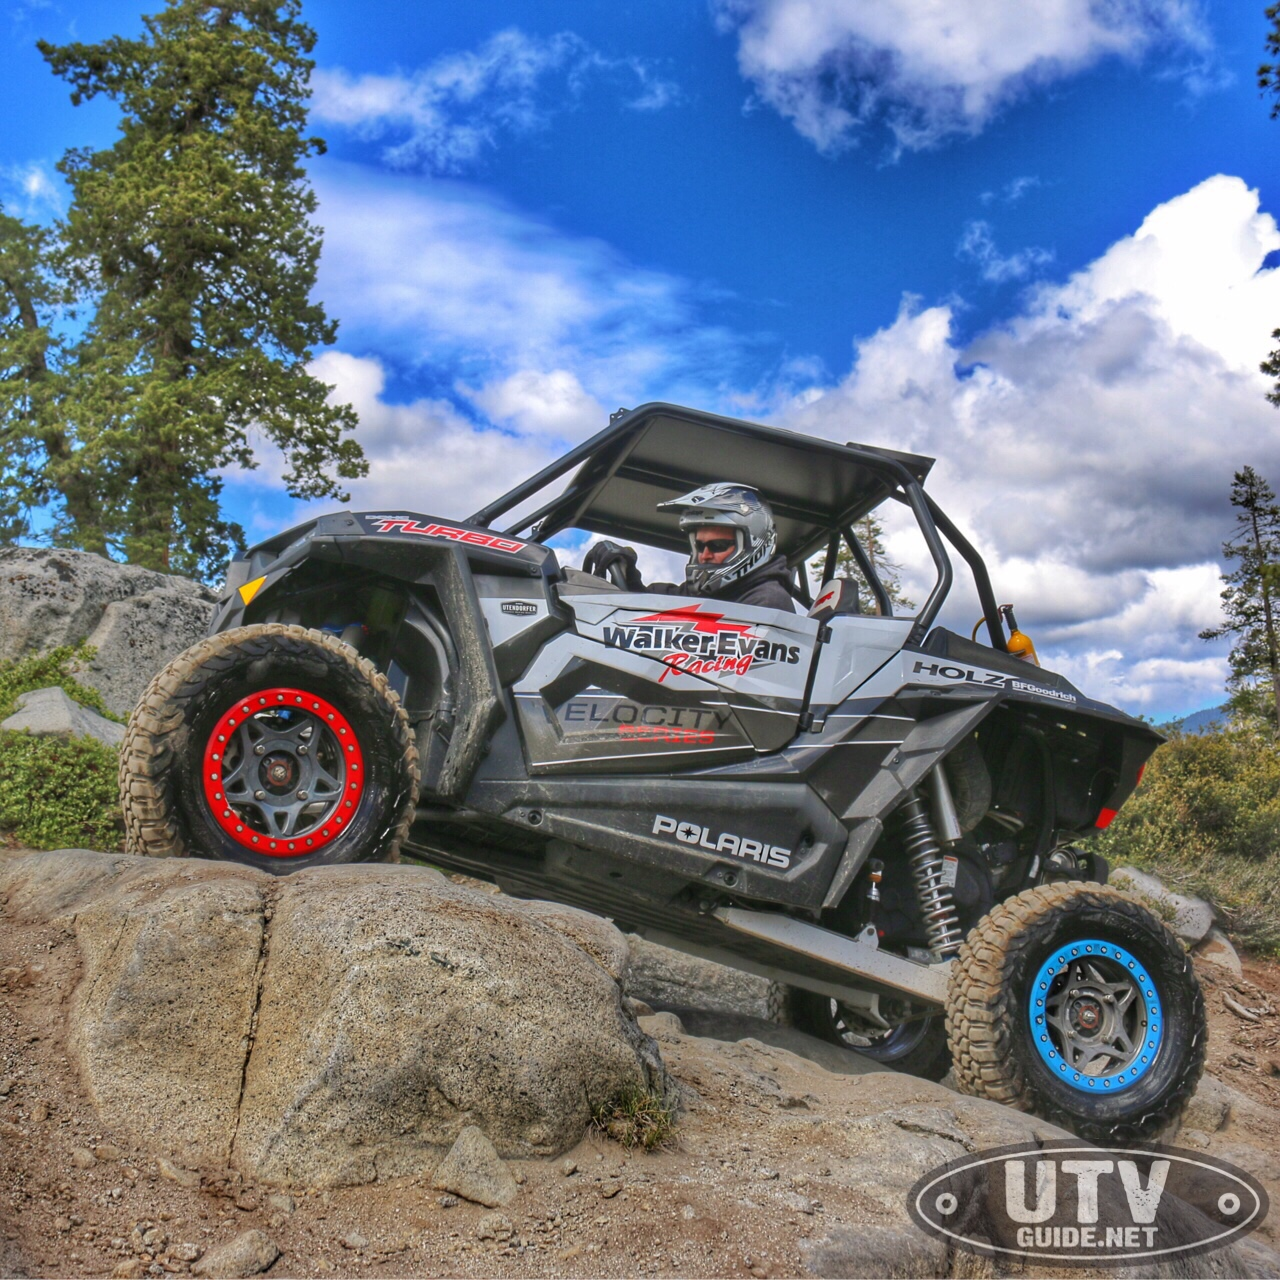 WALKER EVANS RACING is the Official UTV Wheel & Shock of the 2017 NORRA Mexican 1000 - UTV Guide